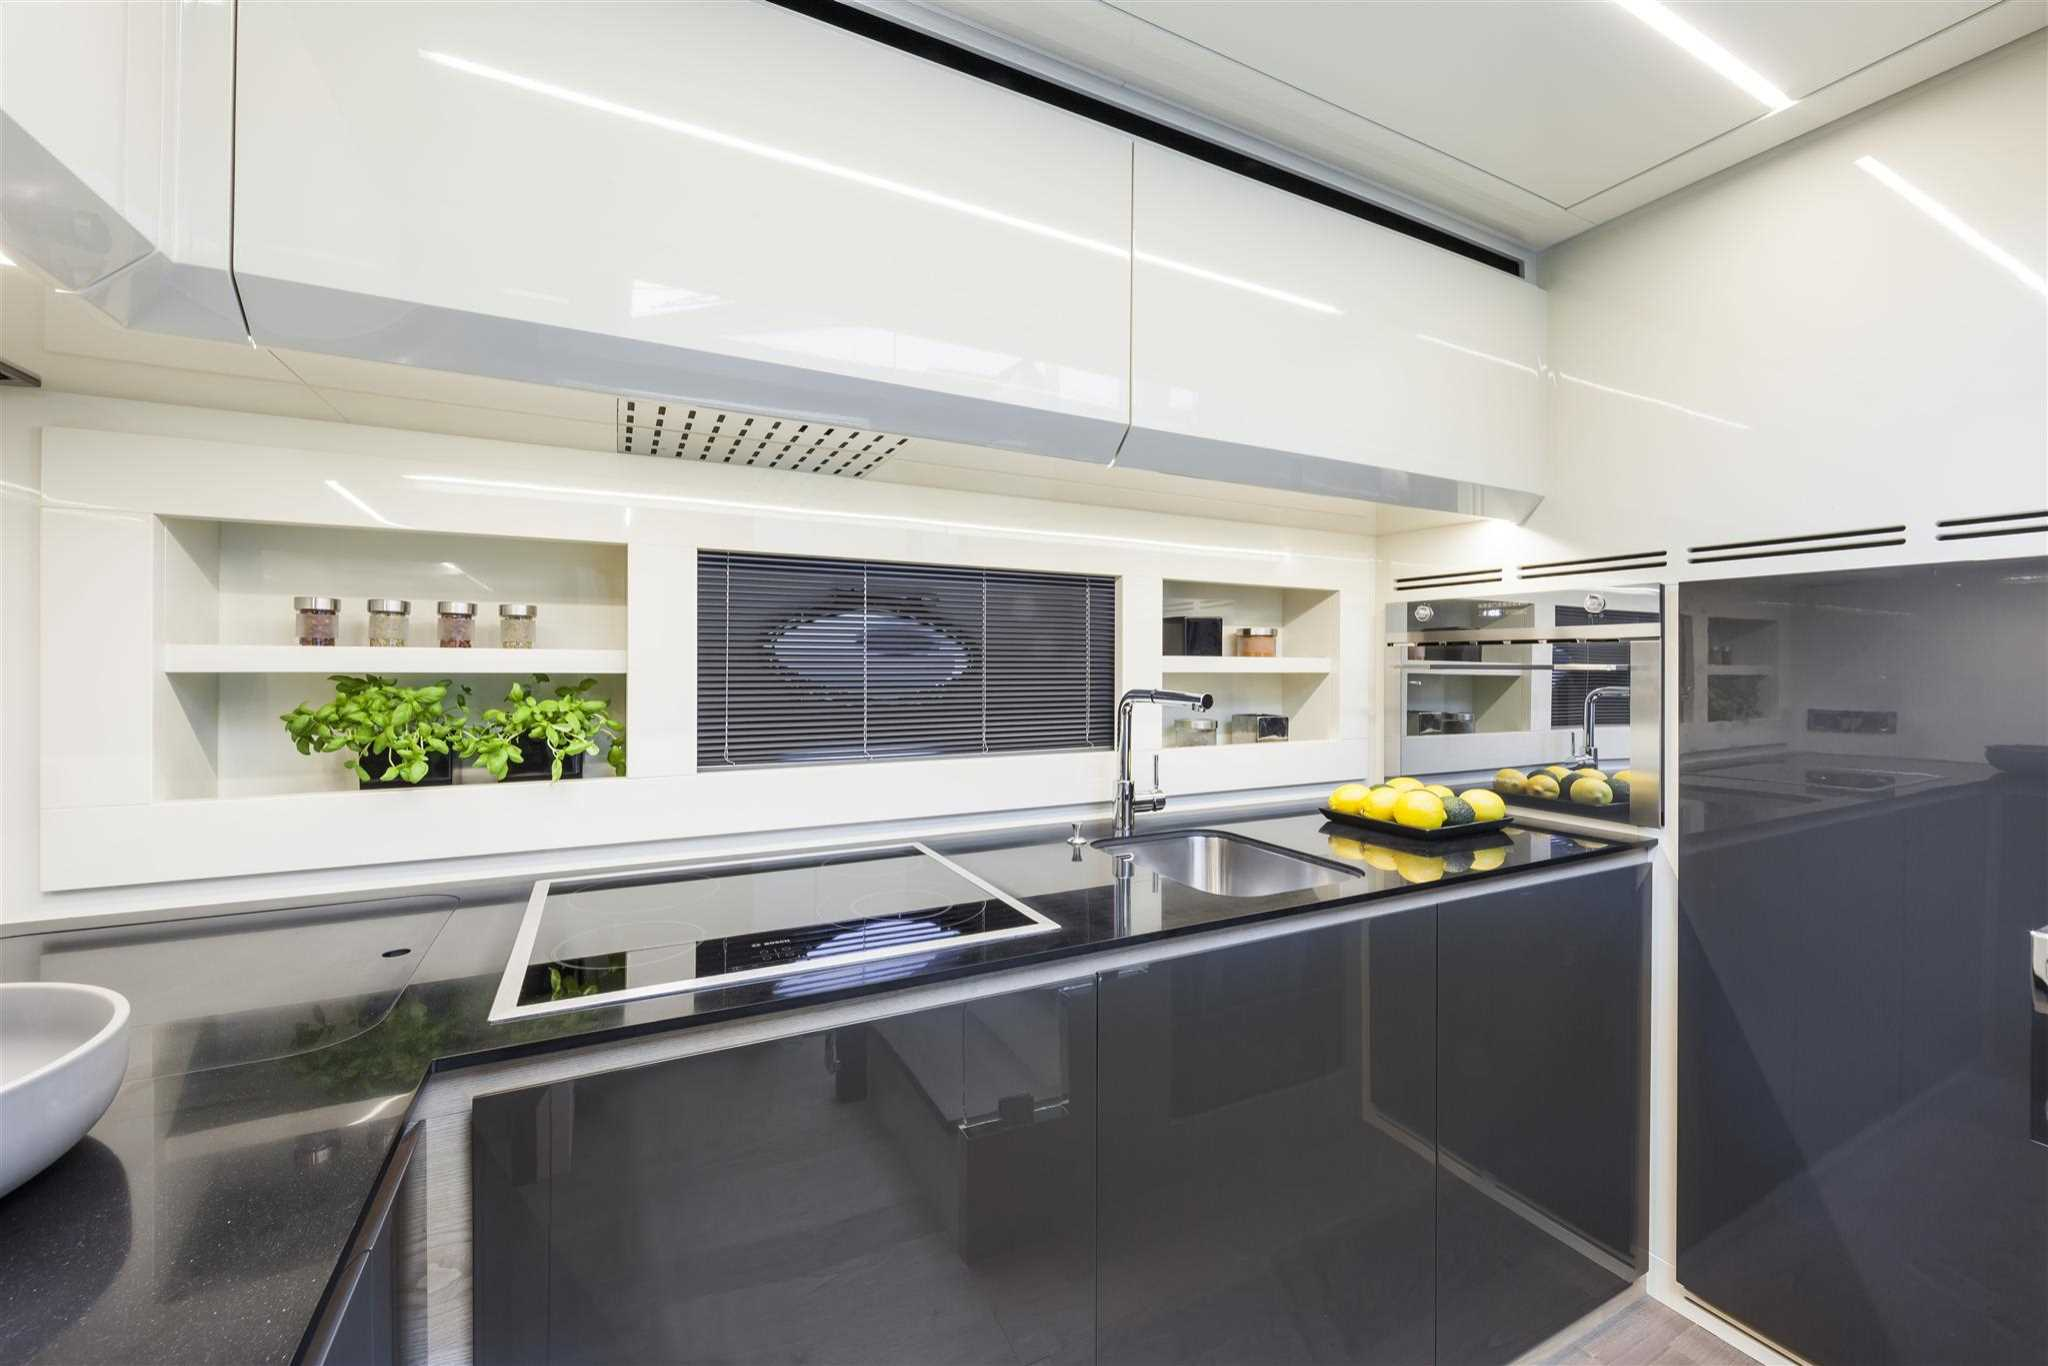 2018 Pershing 70 Yacht Galley